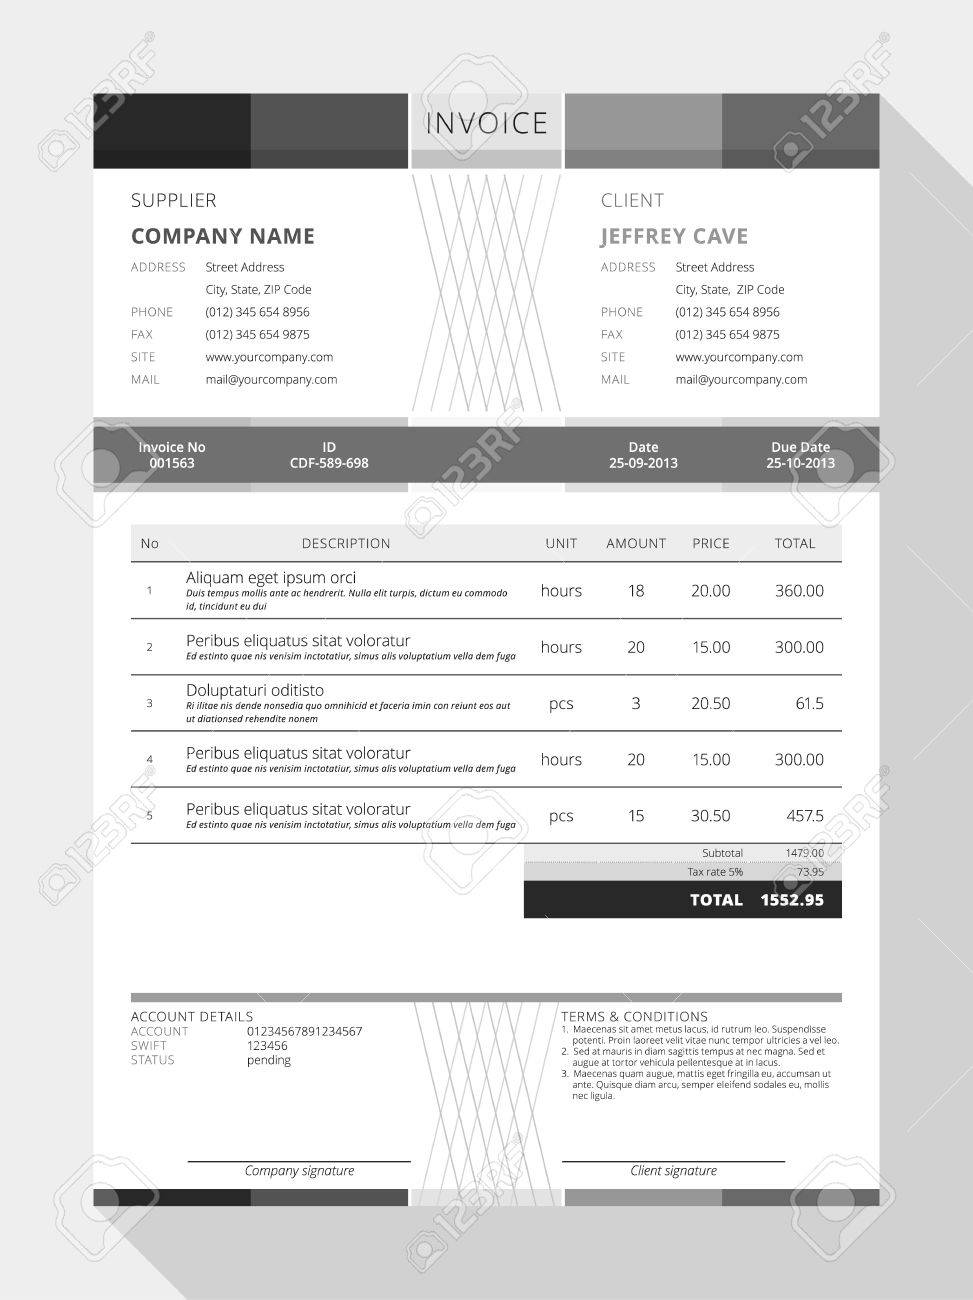 Howcanigettallerus  Marvelous Design An Invoice  Professional Graphic Design Invoice  With Excellent Vector Customizable Invoice Form Template Design Vector   Design An Invoice With Alluring Read Receipt Imessage Also Autozone Receipt In Addition Receipt Number On Green Card And Sample Receipt Form As Well As Sears Return Without Receipt Additionally Avis Rental Receipt From Happytomco With Howcanigettallerus  Excellent Design An Invoice  Professional Graphic Design Invoice  With Alluring Vector Customizable Invoice Form Template Design Vector   Design An Invoice And Marvelous Read Receipt Imessage Also Autozone Receipt In Addition Receipt Number On Green Card From Happytomco